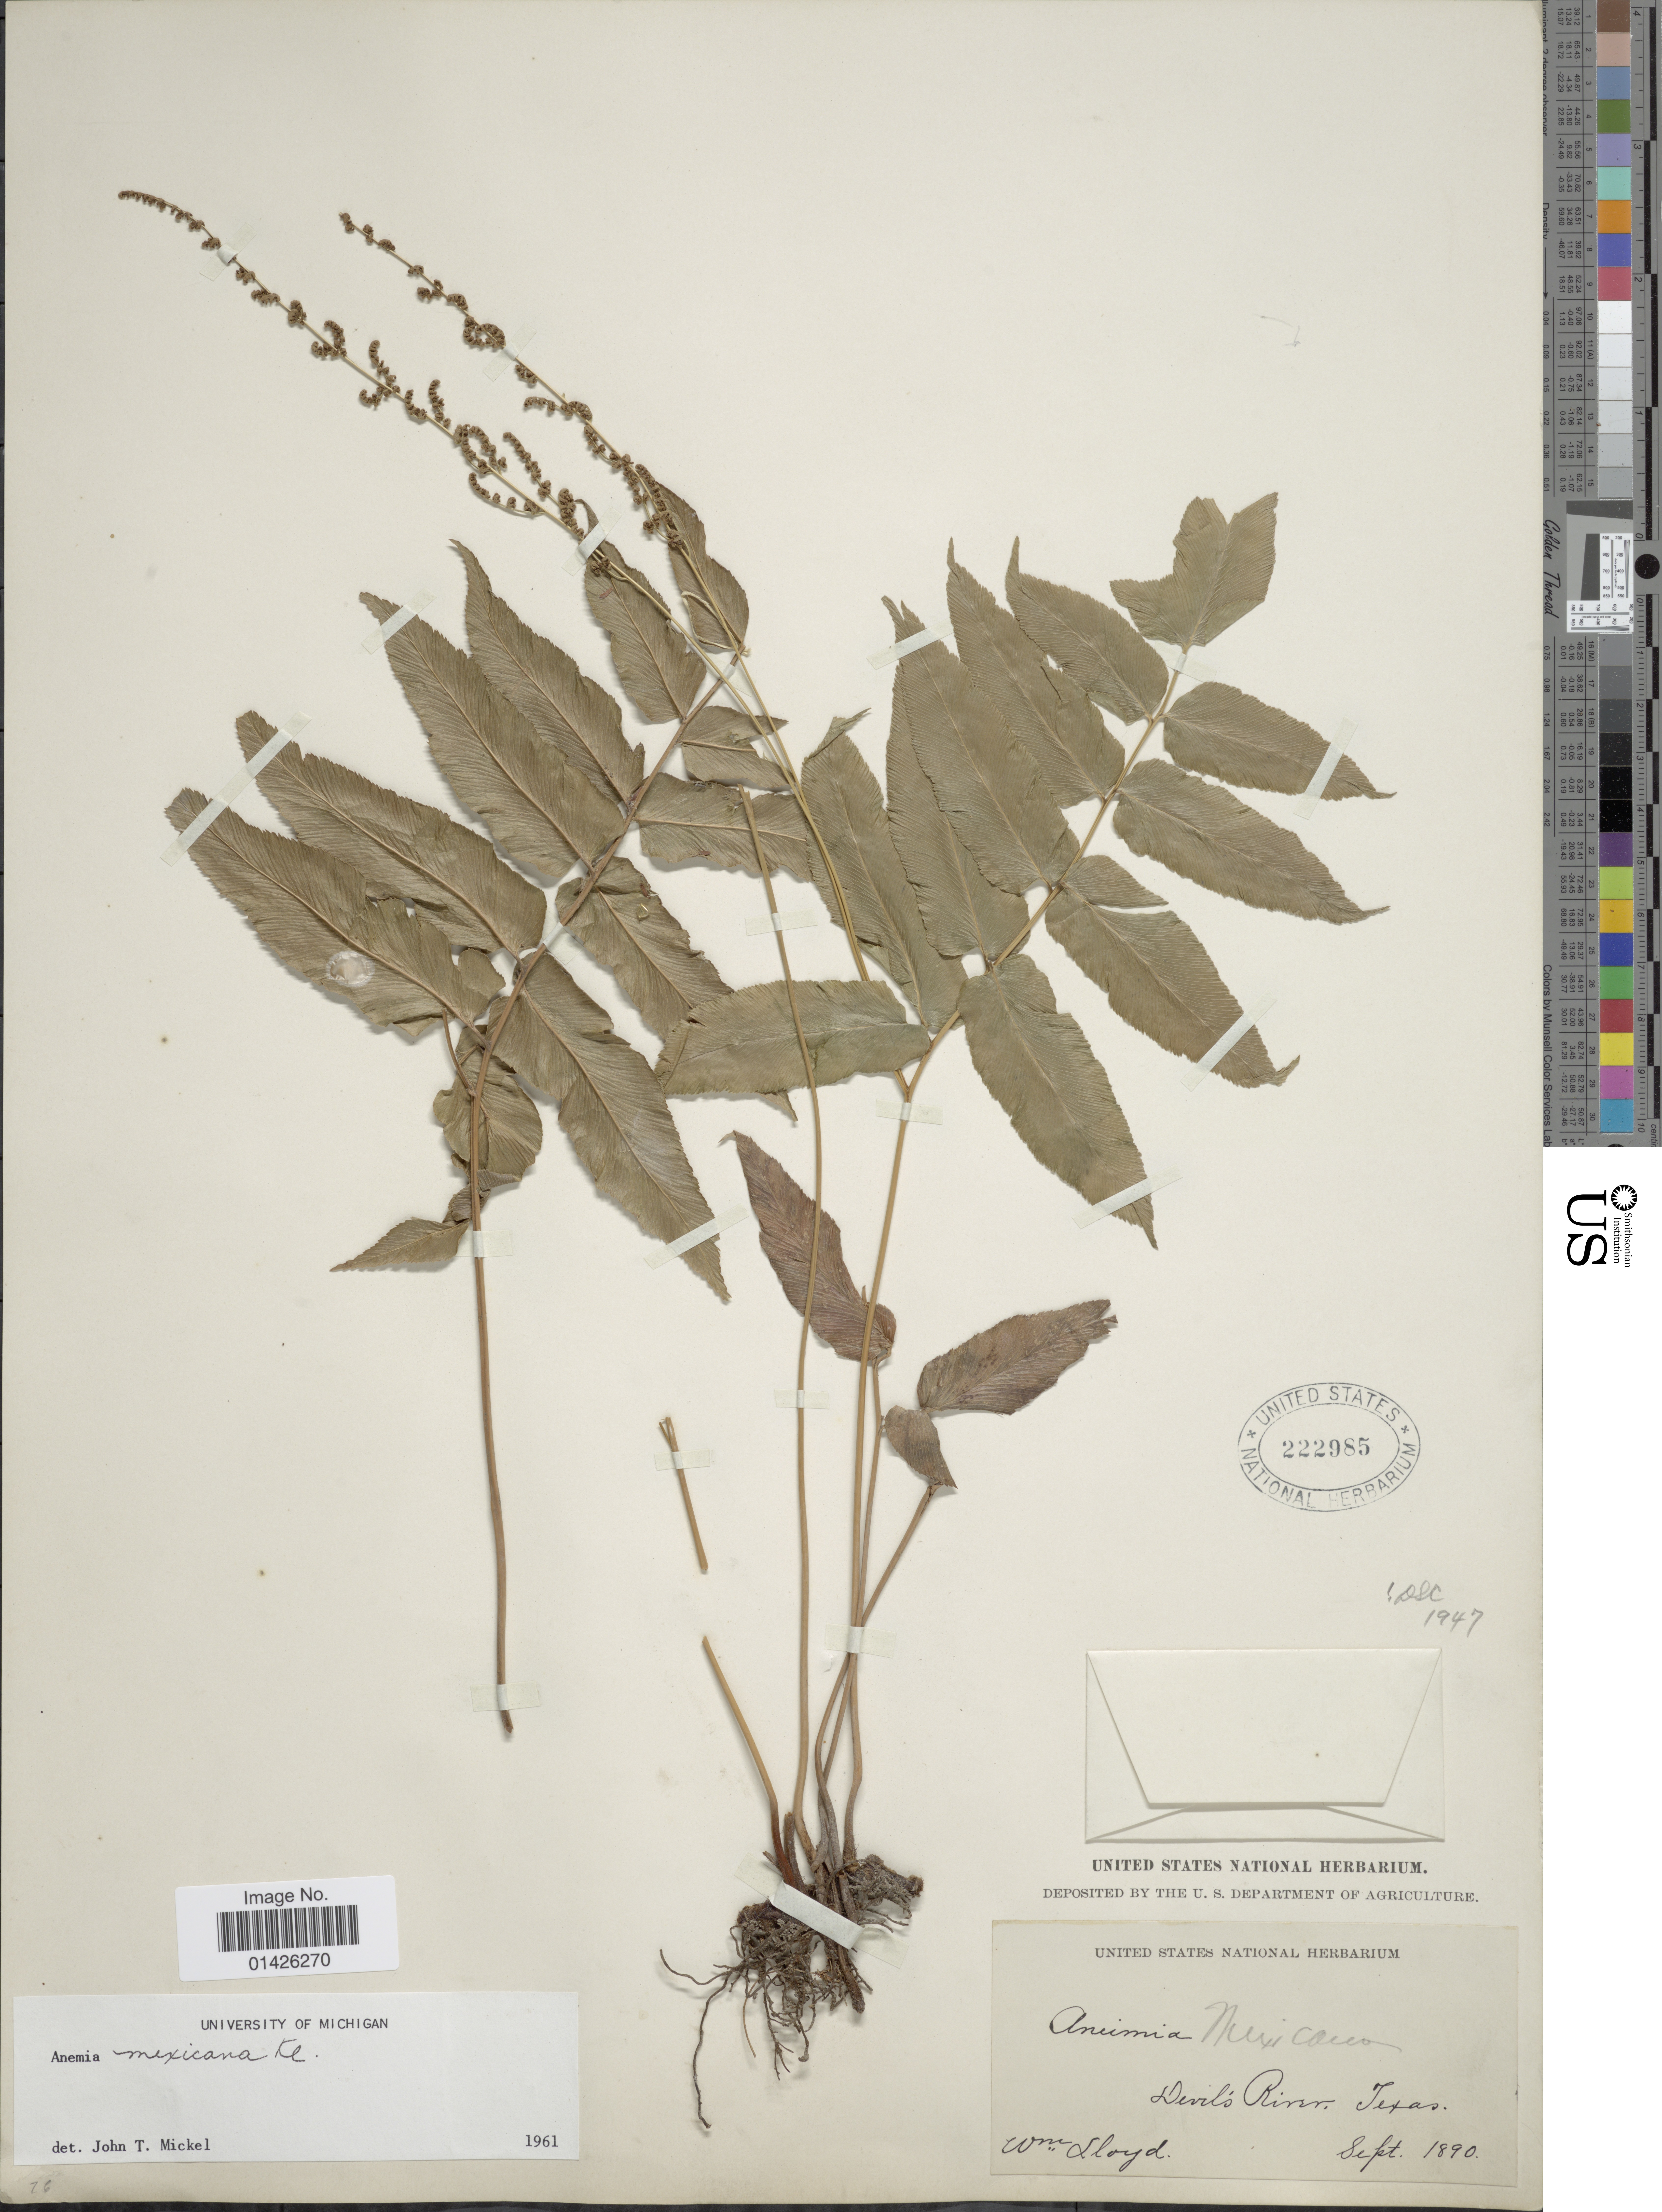 Image of Mexican fern